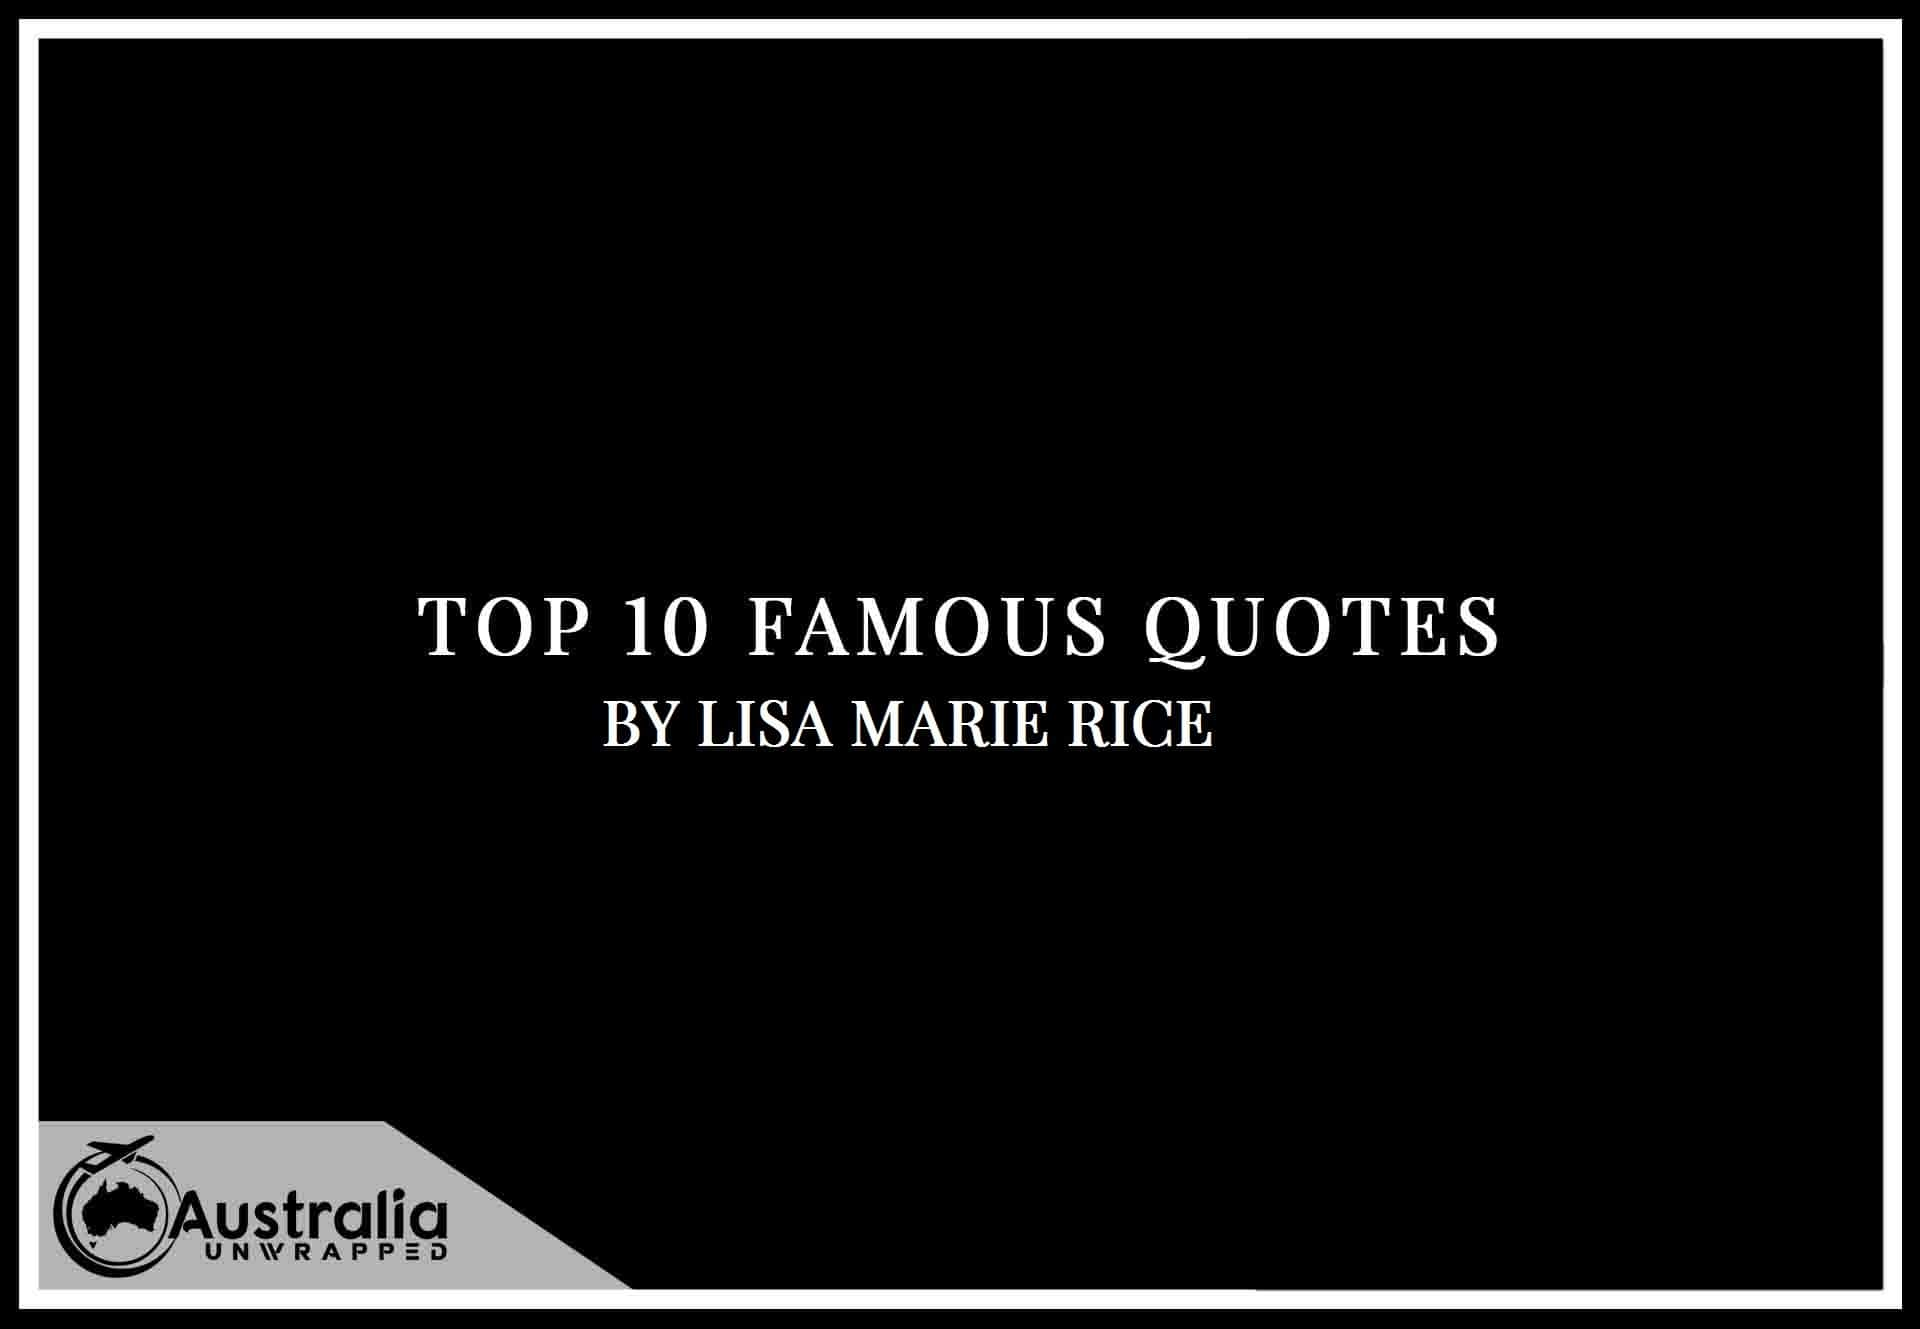 Lisa Marie Rice's Top 10 Popular and Famous Quotes